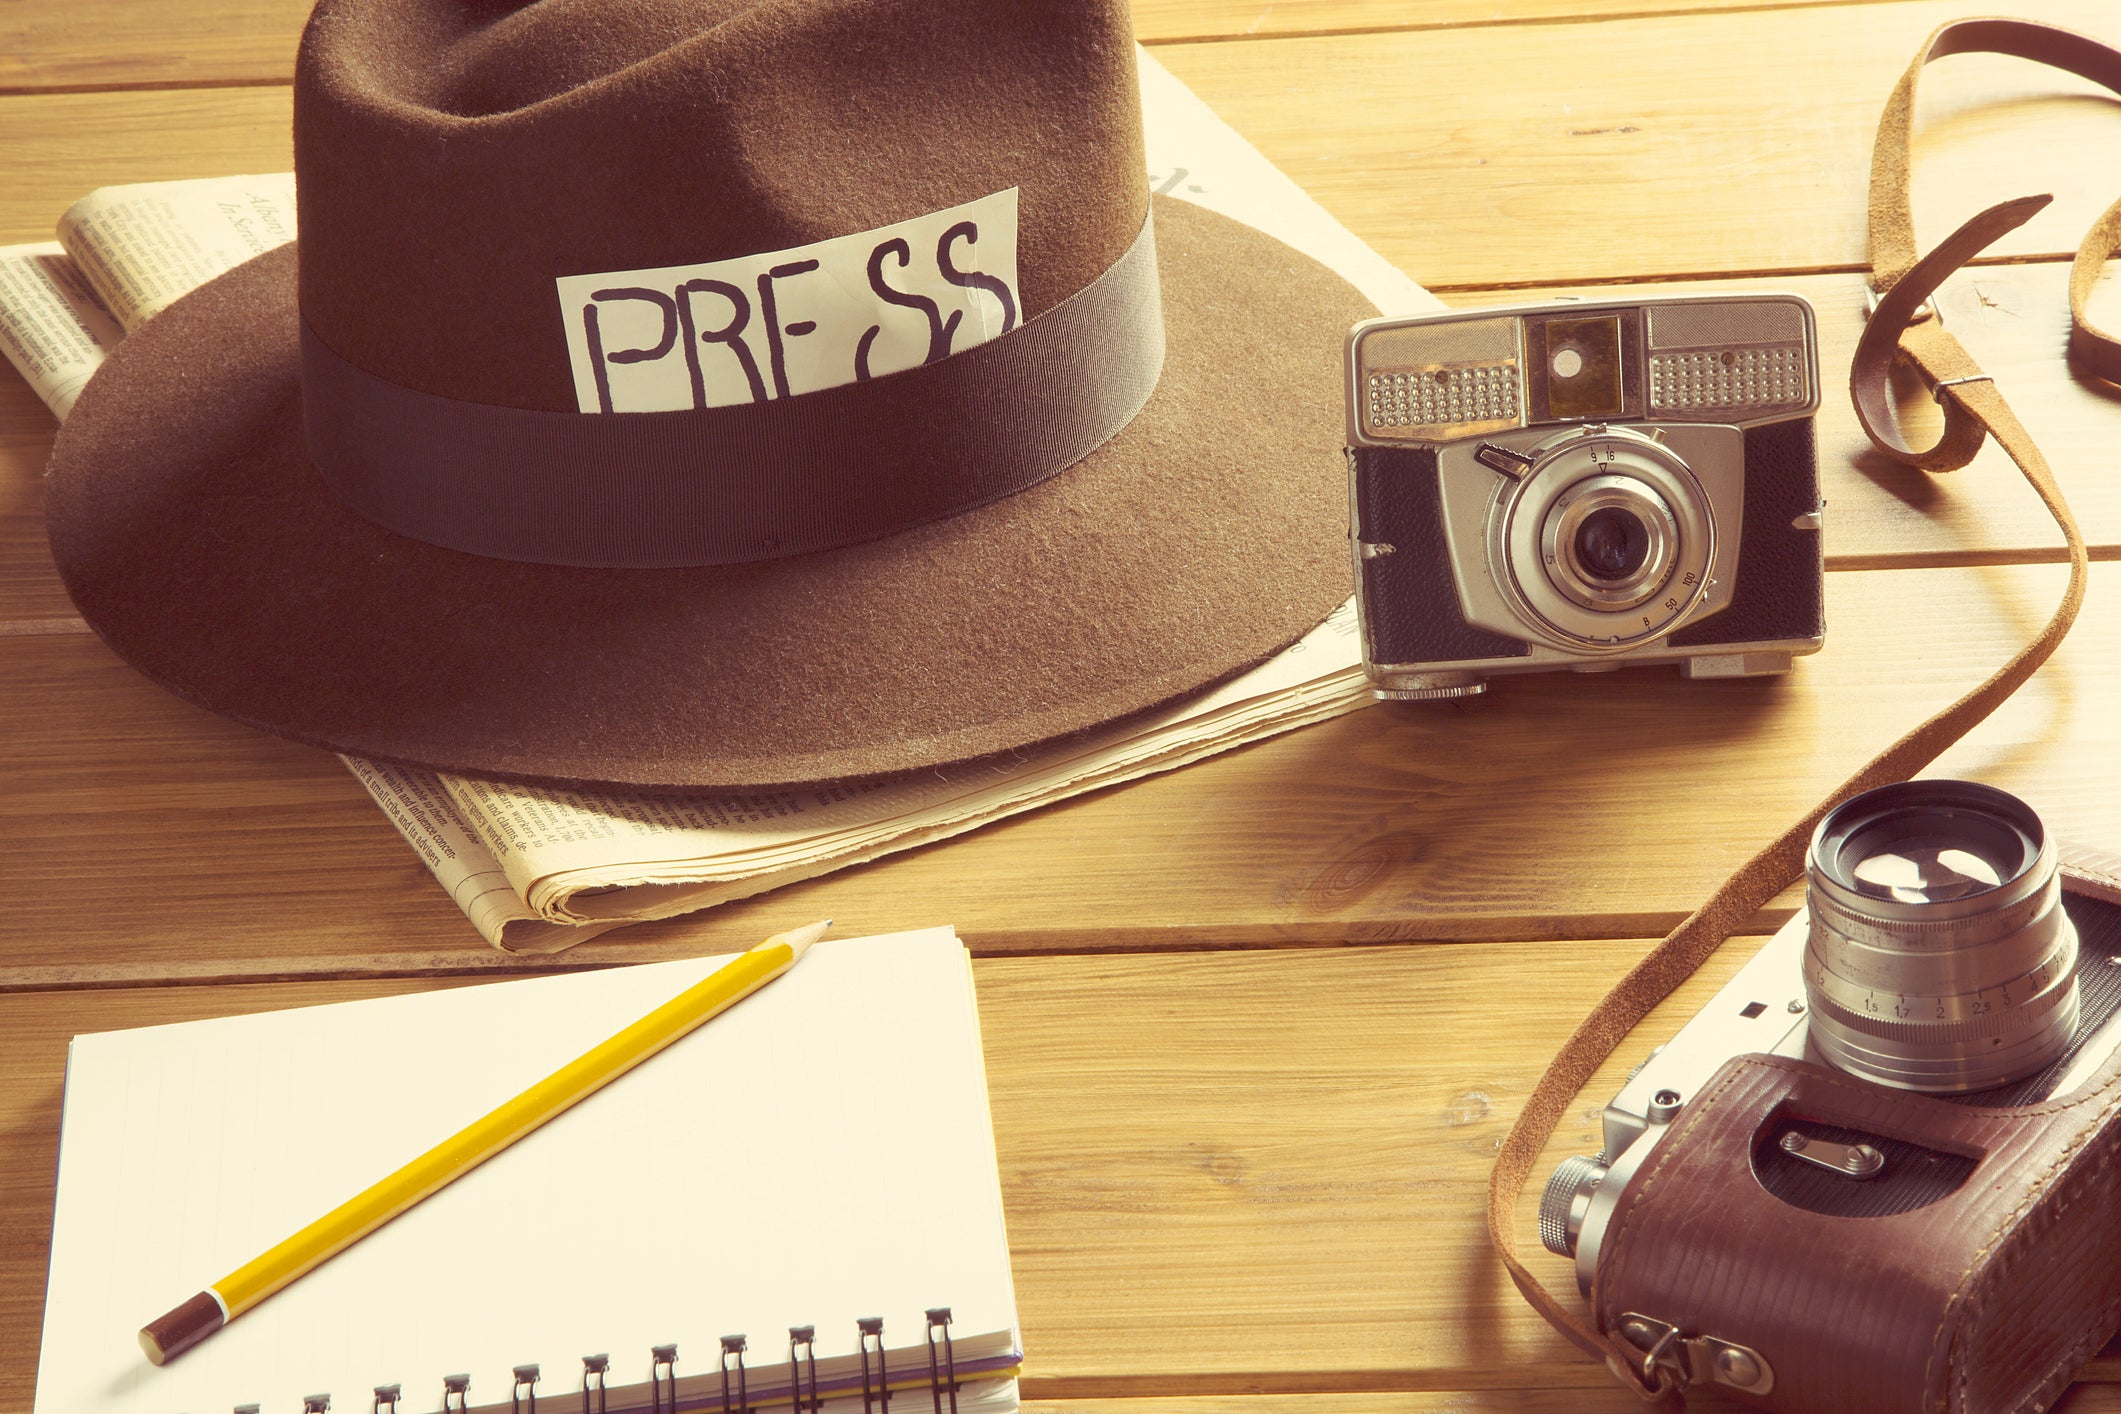 Journalism tools on a table, including a camera, notebook, and press hat.